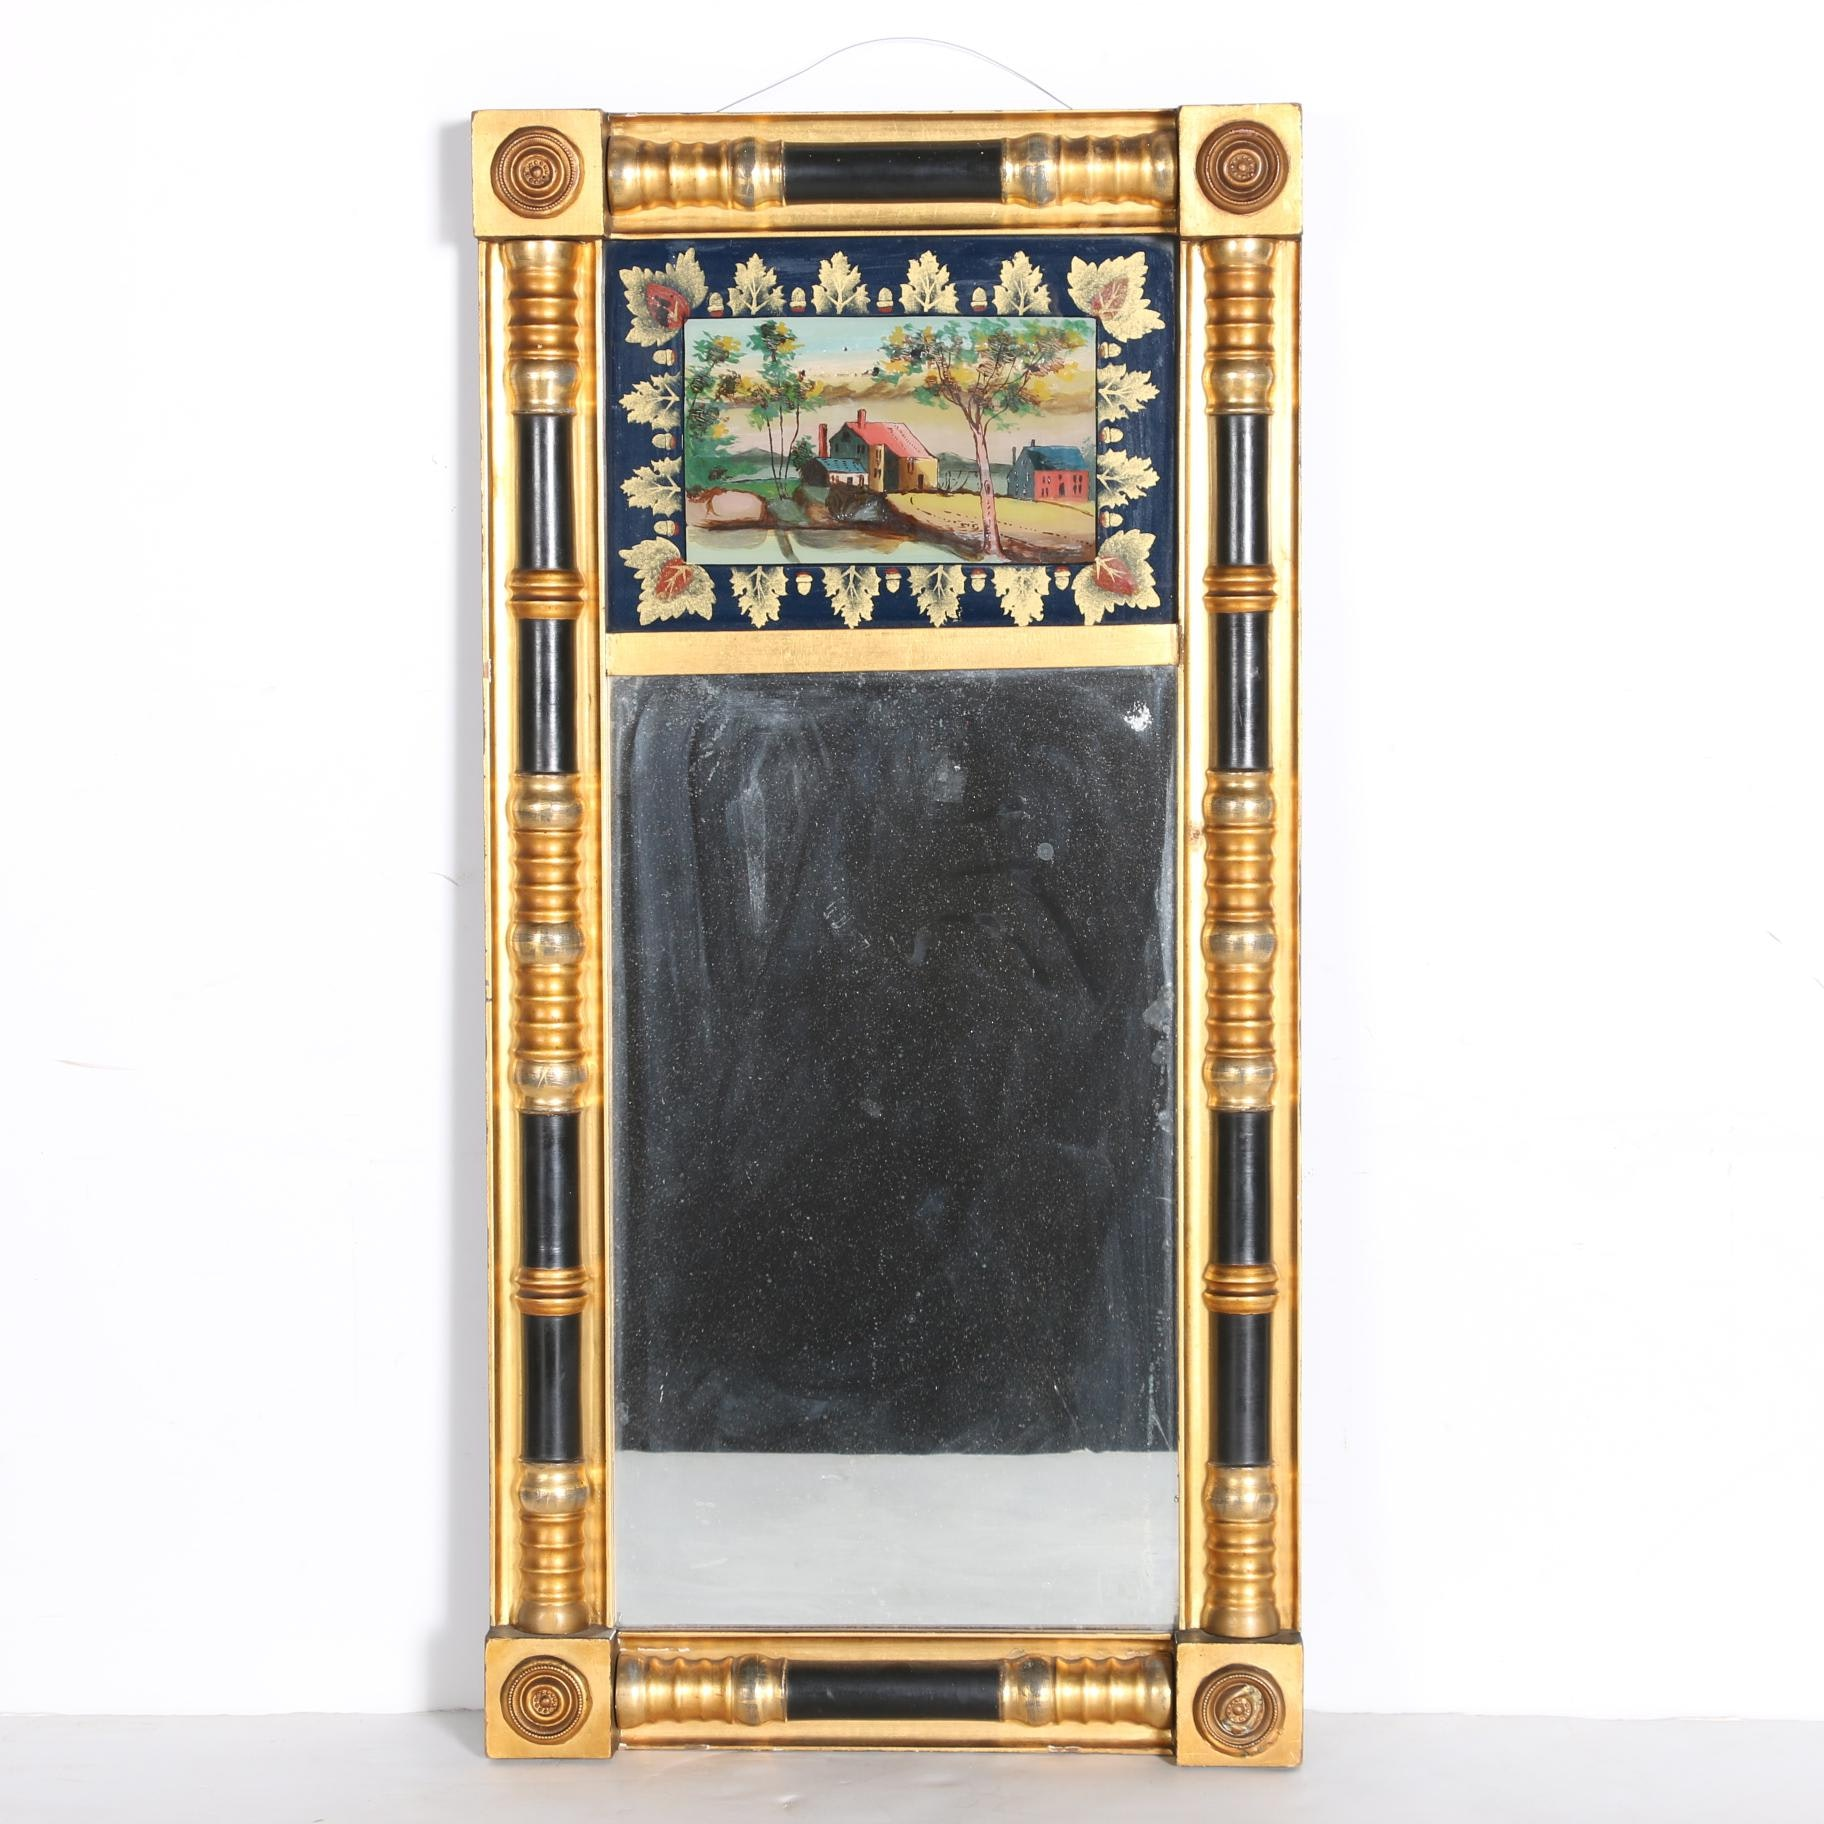 19th Century Split Baluster Tabernacle Mirror